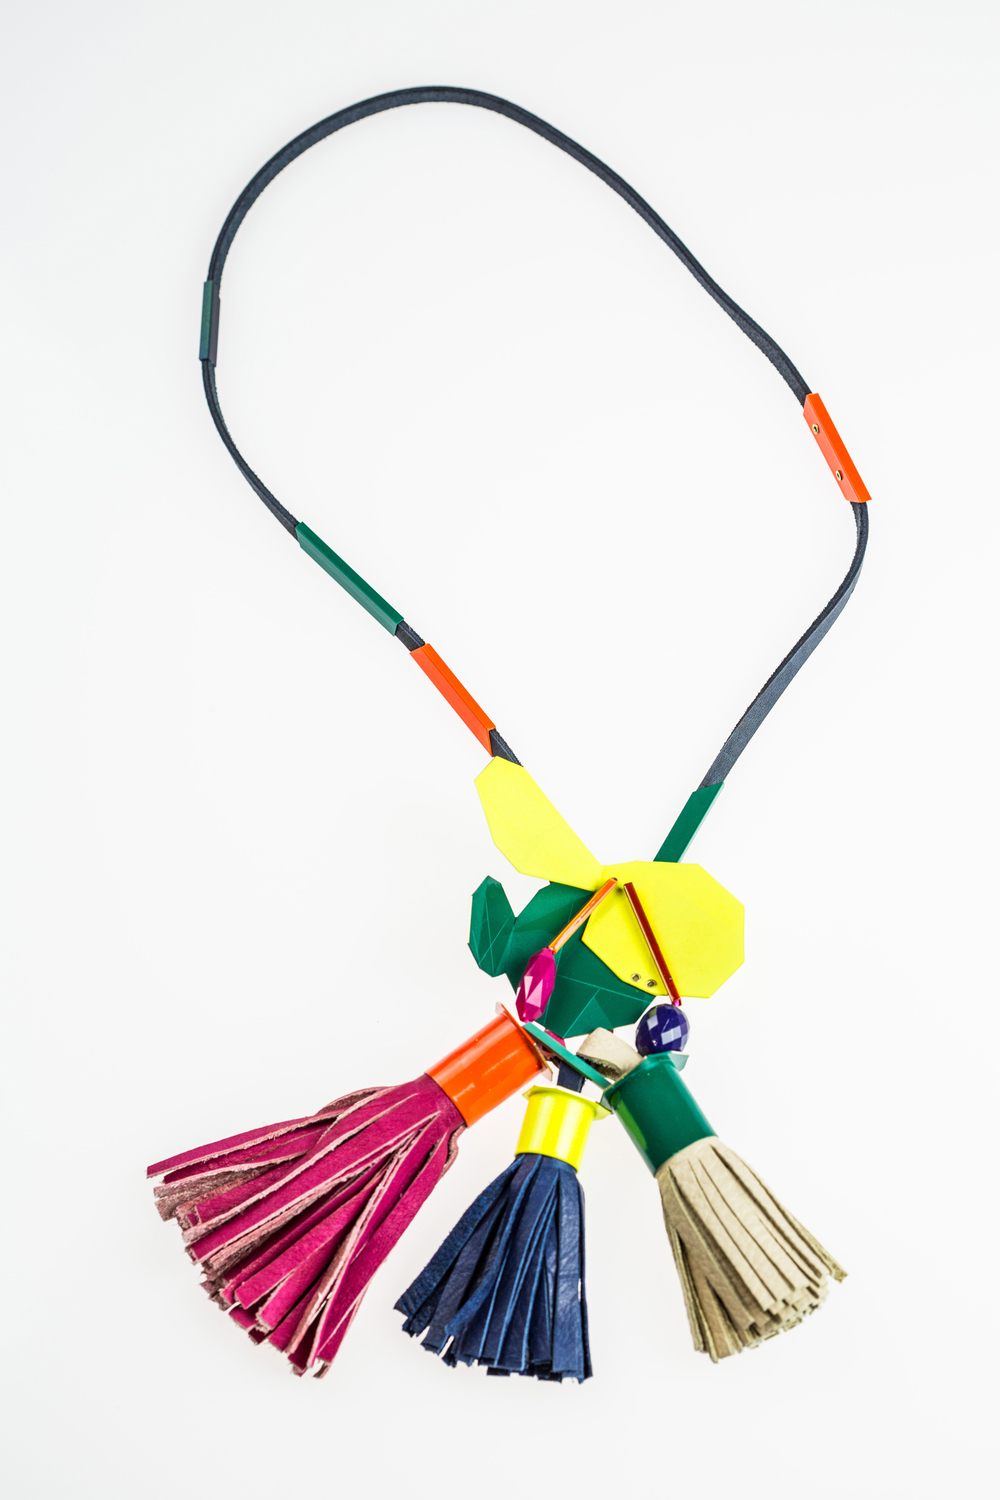 2 Gems and Tassels Necklace_Voegele.jpg